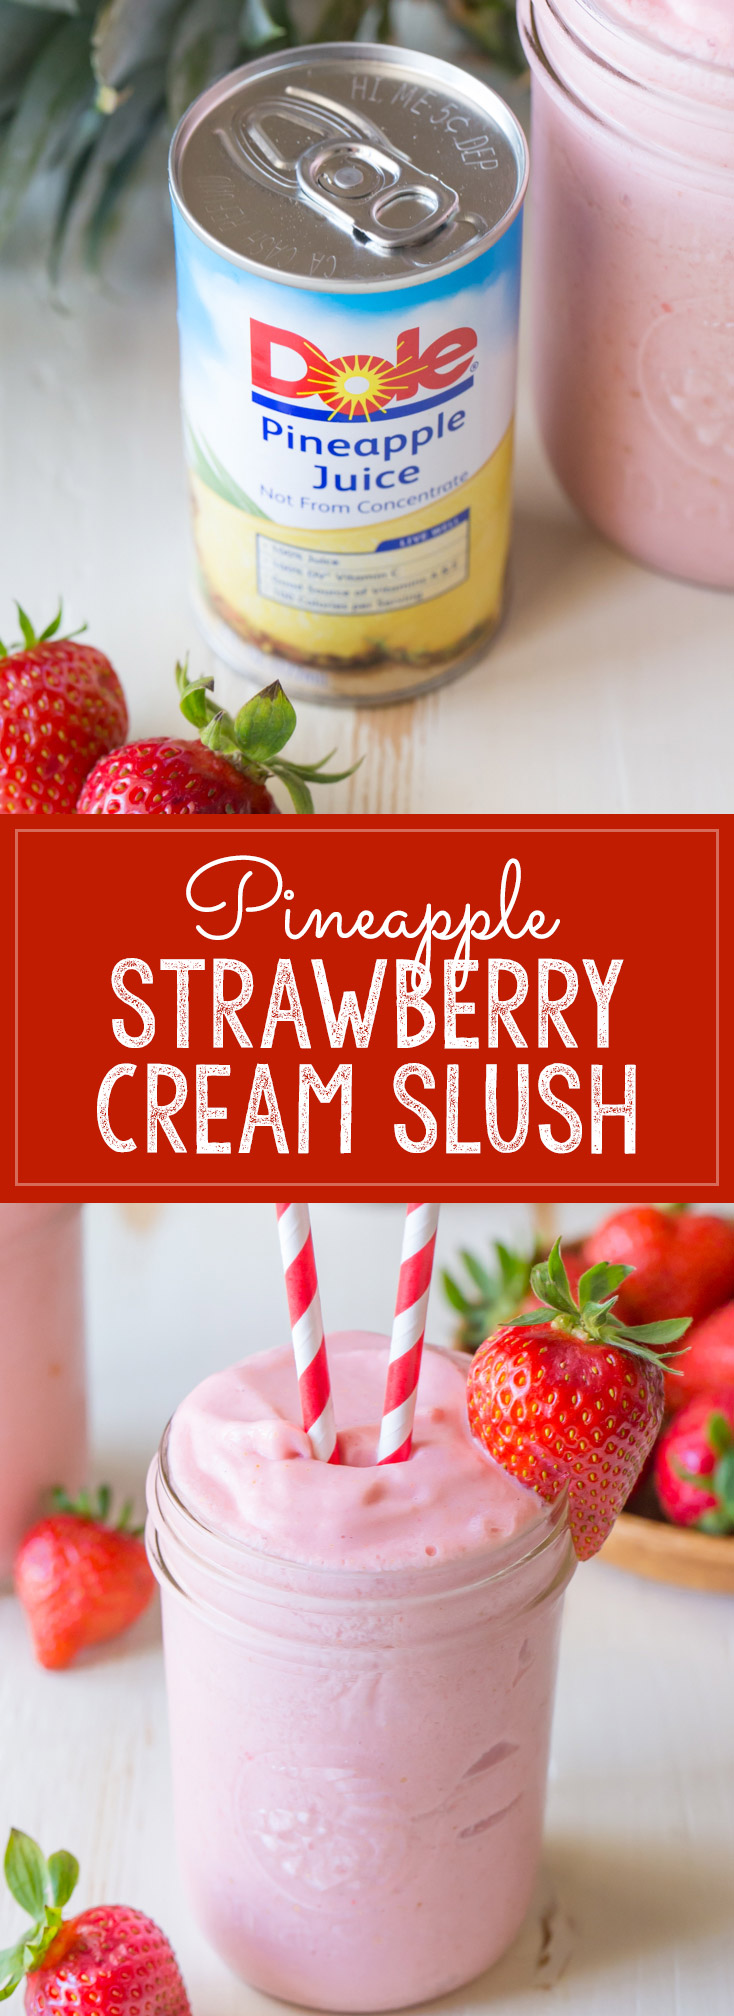 Dole Pineapple Strawberry Cream Slush - All you need is four simple ingredients and a blender, and you can make this super refreshing DOLE Pineapple Strawberry Cream Slush!